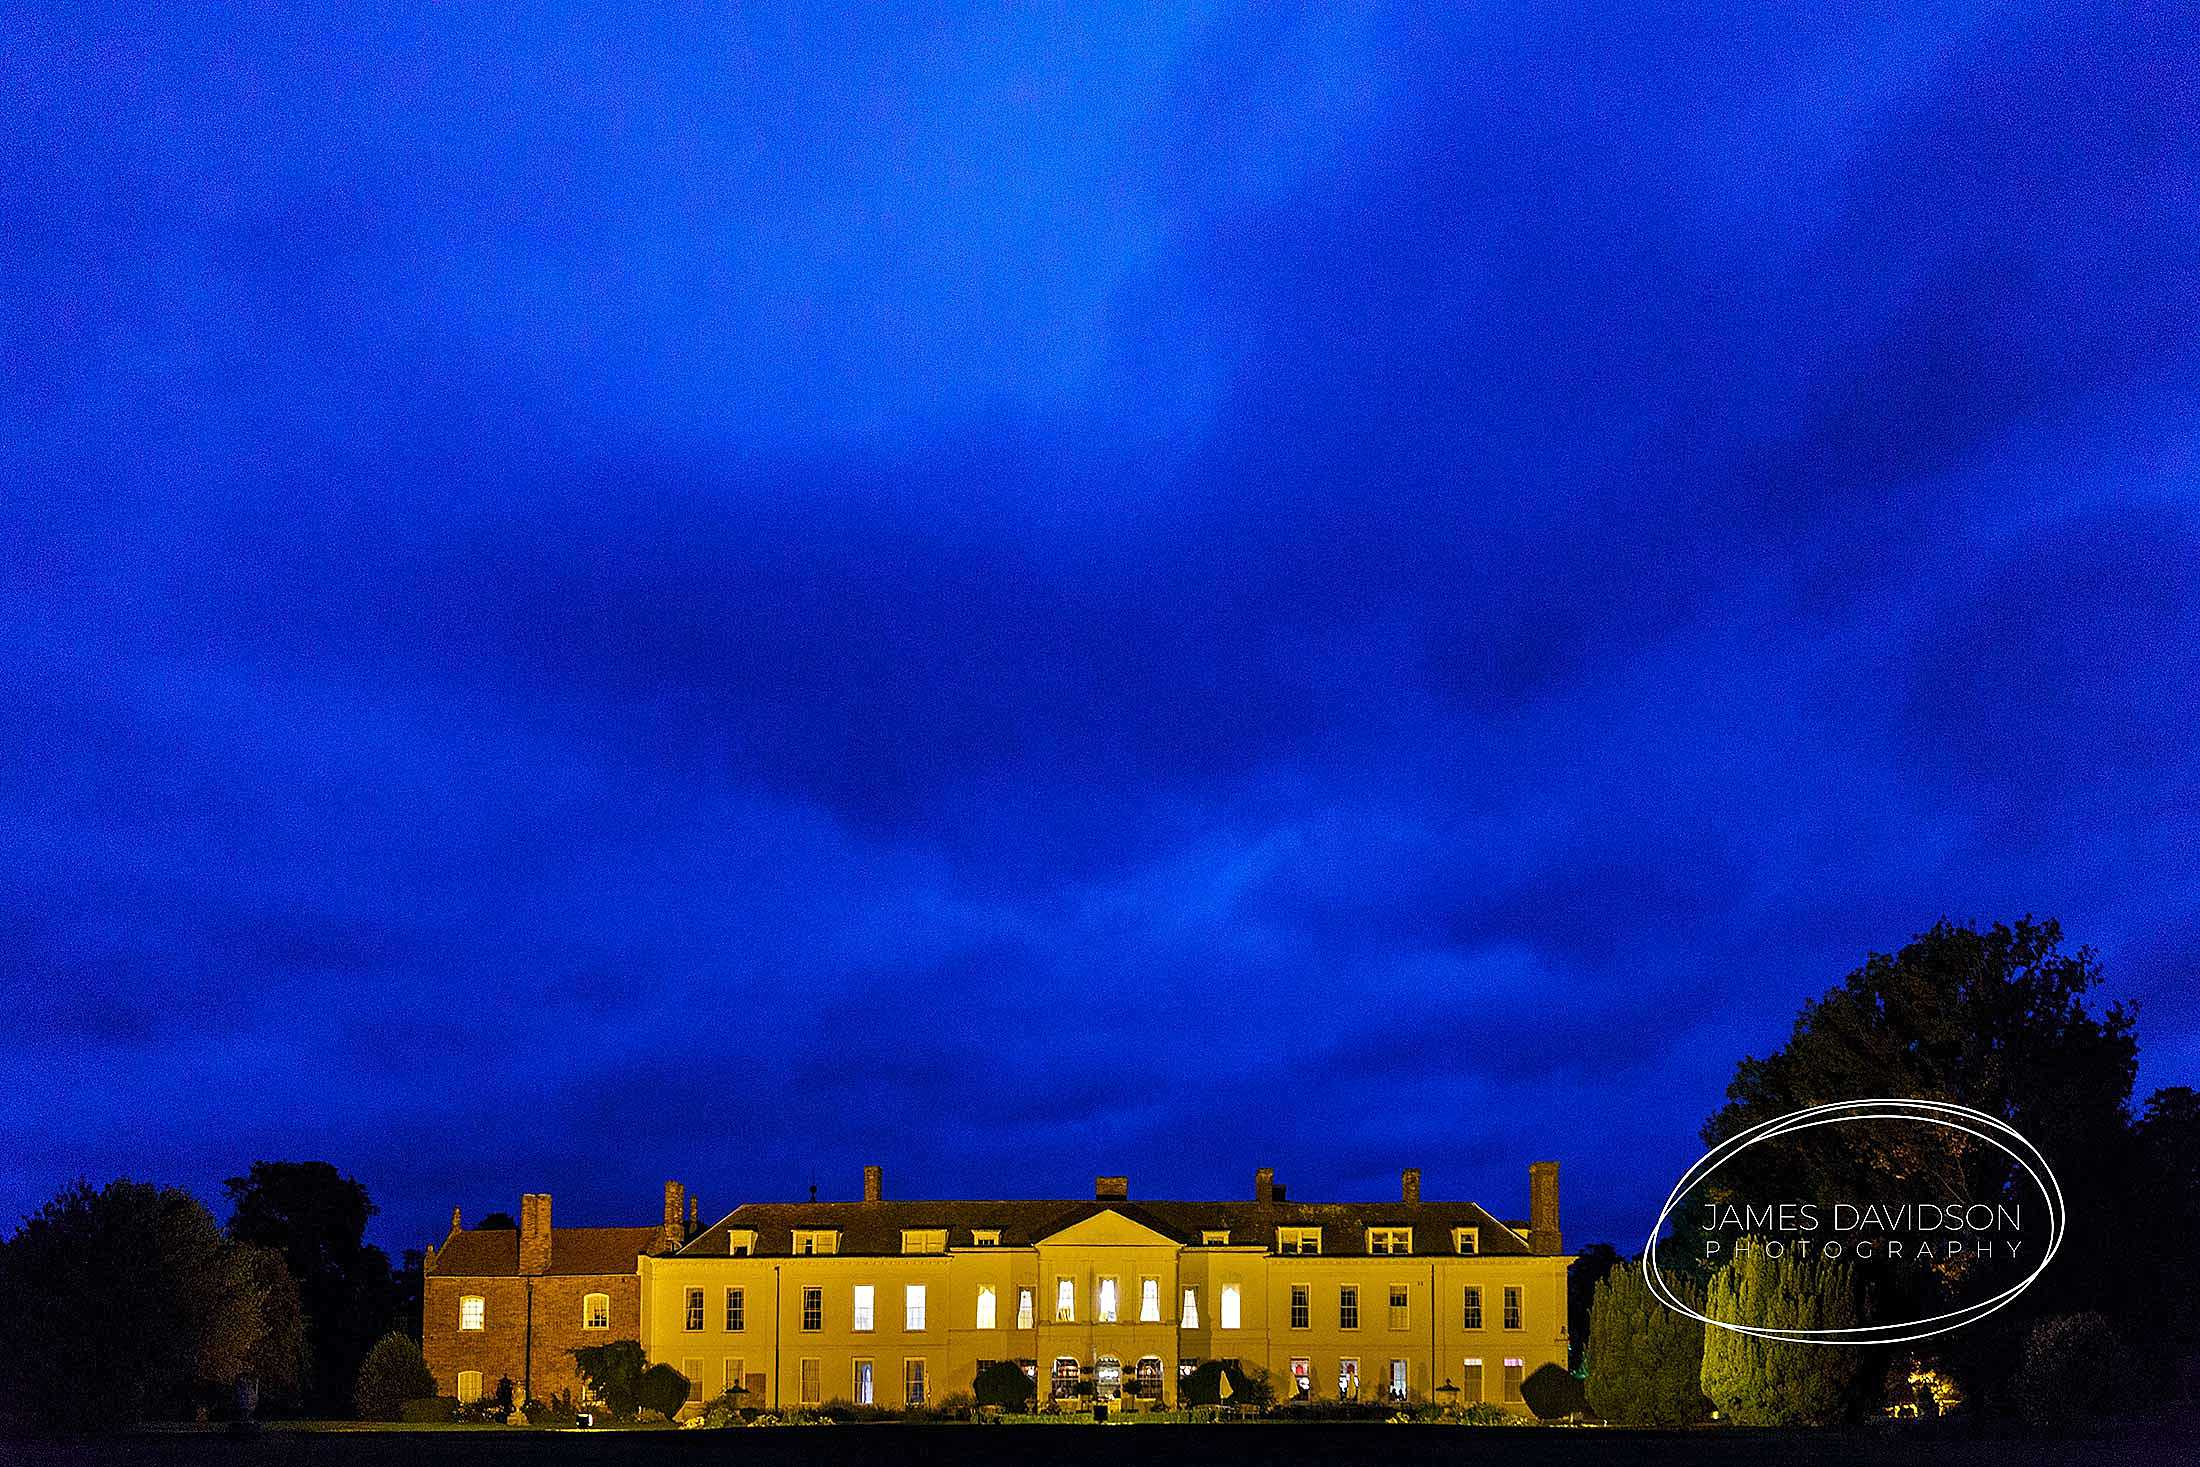 gosfield-hall-wedding-photography-177